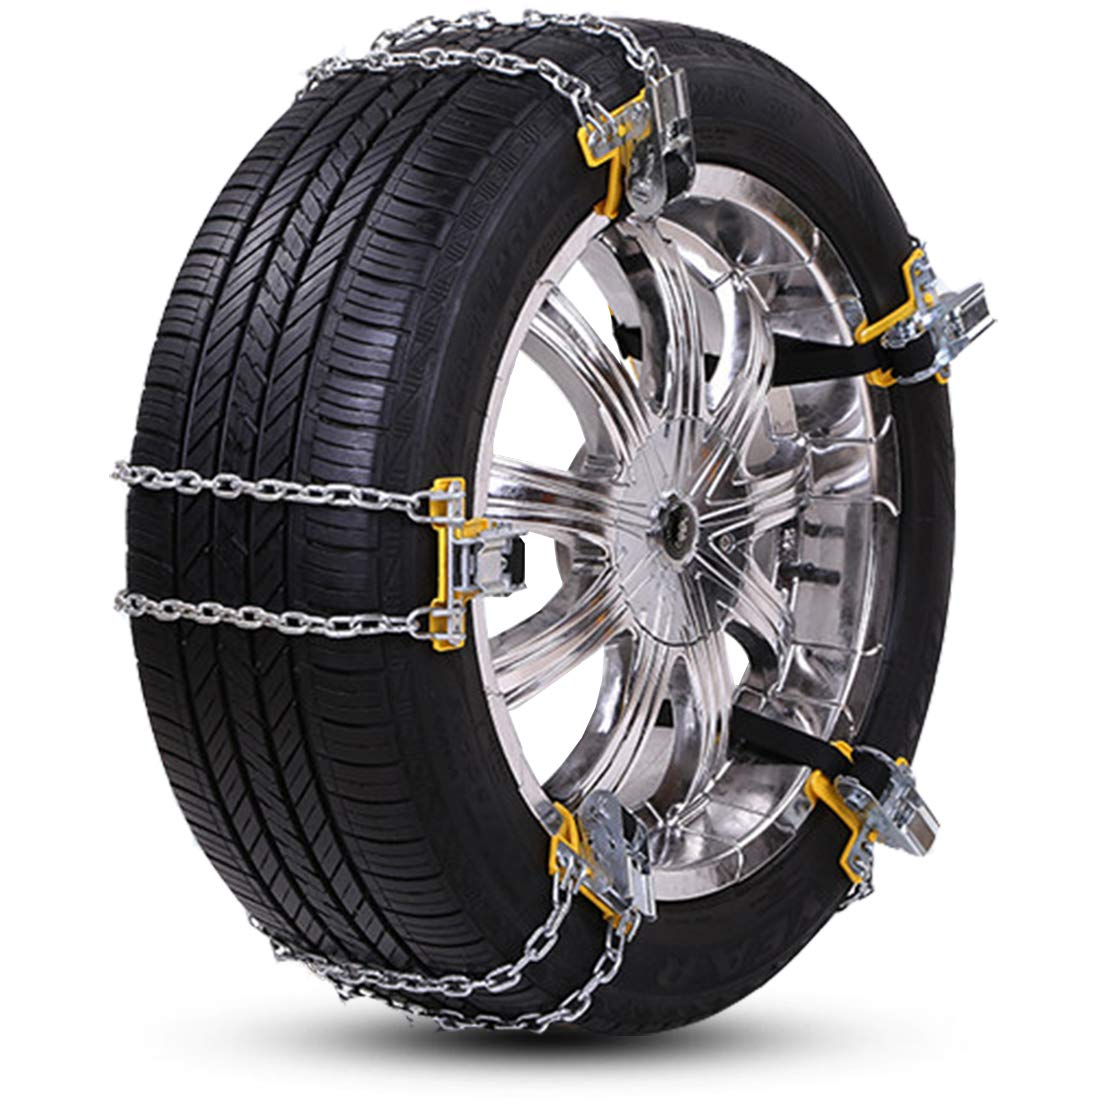 """Big Ant Snow Chain Anti-Skid Tire Snow Chains, Winter Tire Chains for Car Adjustable Emergency Snow Chain Fit Tire Width 235-285mm/9.25-11.2"""" (6PCS)"""